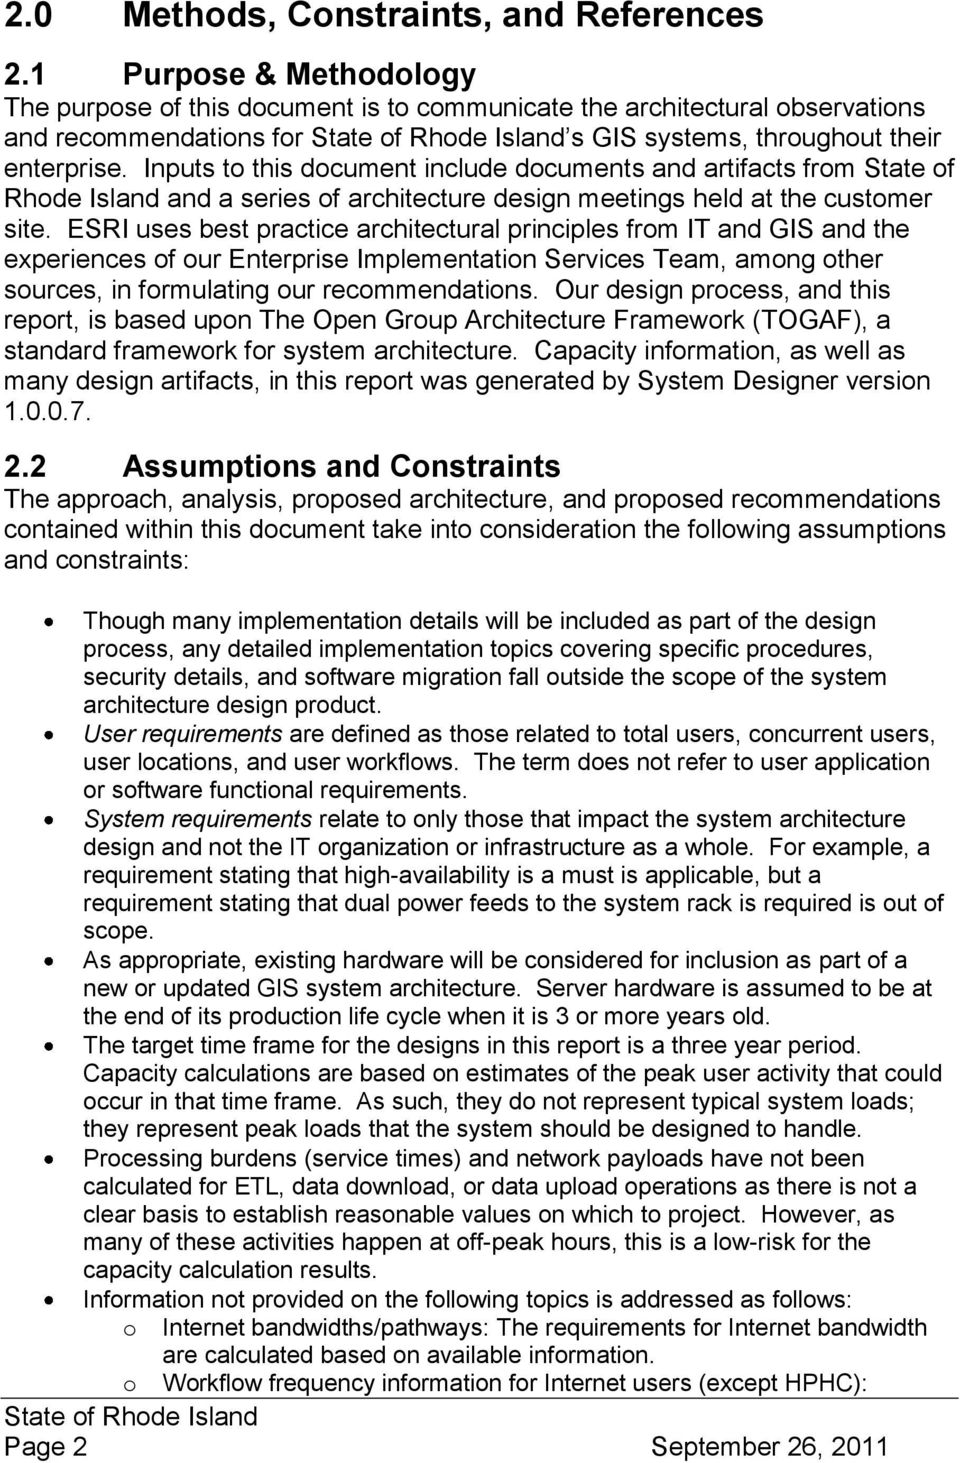 Inputs to this document include documents and artifacts from State of Rhode Island and a series of architecture design meetings held at the customer site.